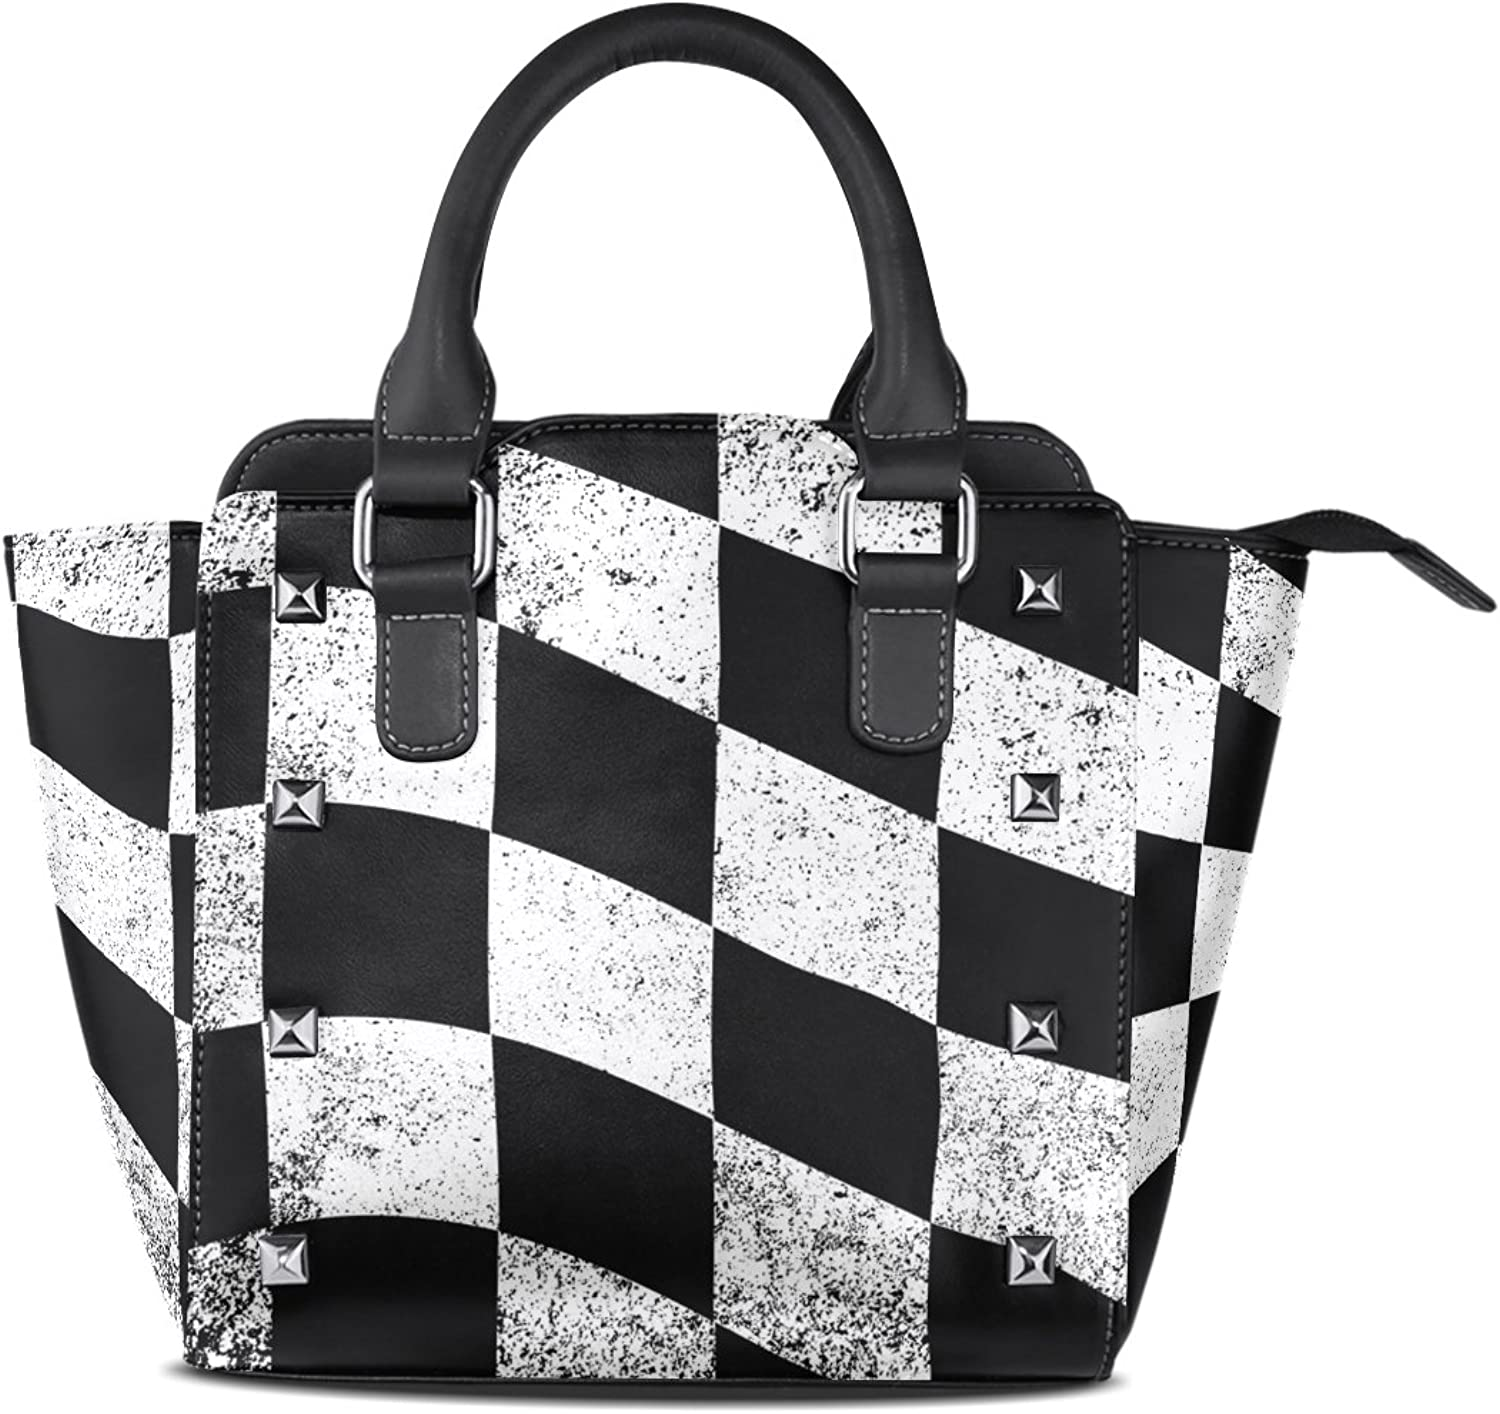 Sunlome Dirty Chequered Flag Black White Checked Print Handbags Women's PU Leather Top-Handle Shoulder Bags